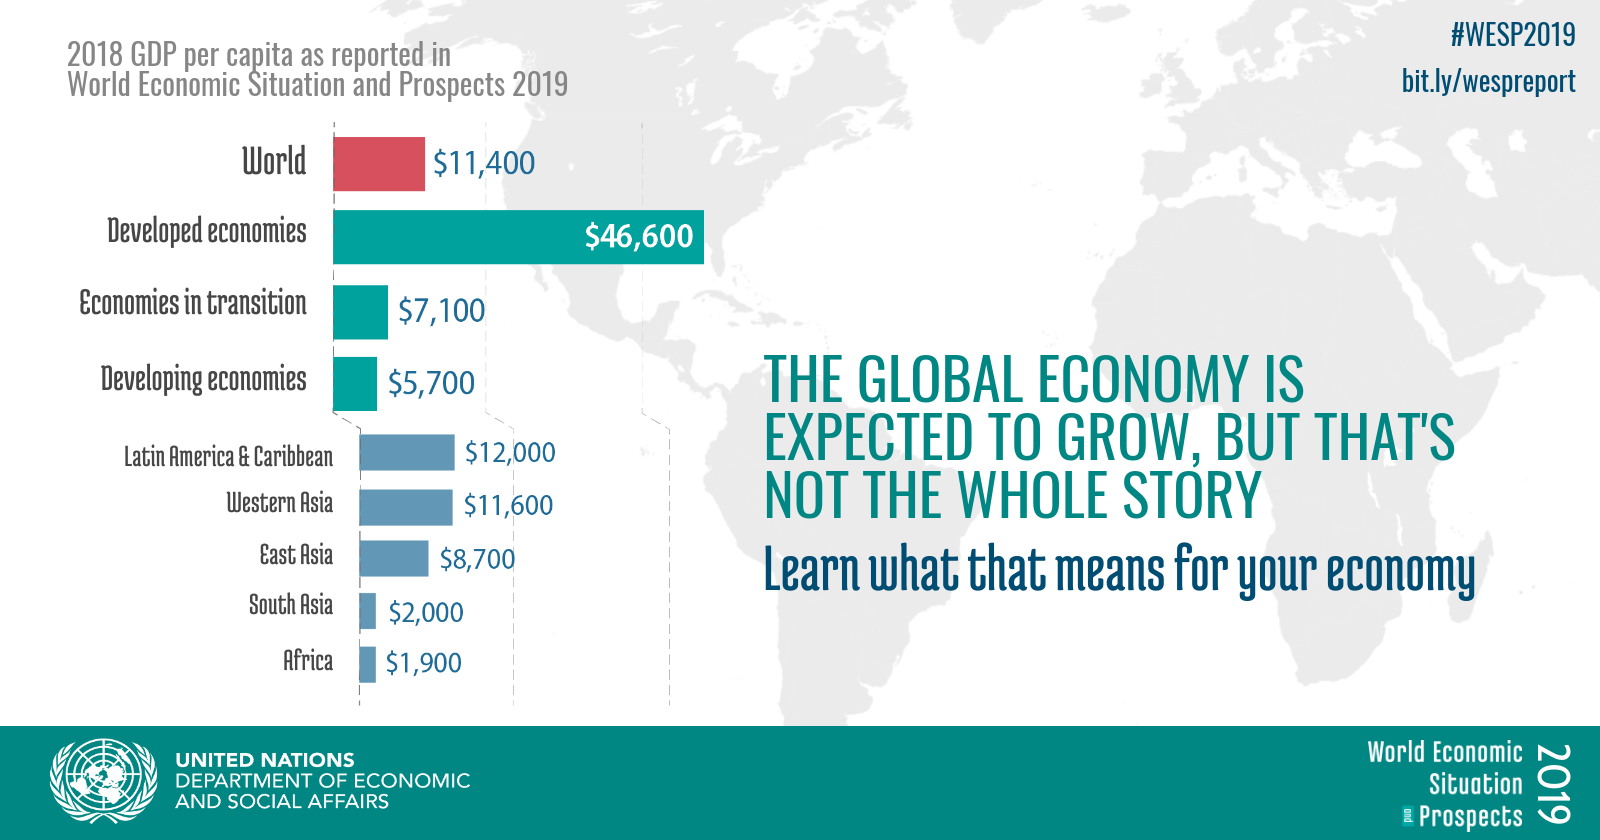 World Economic Situation & Prospects for 2019 | Department